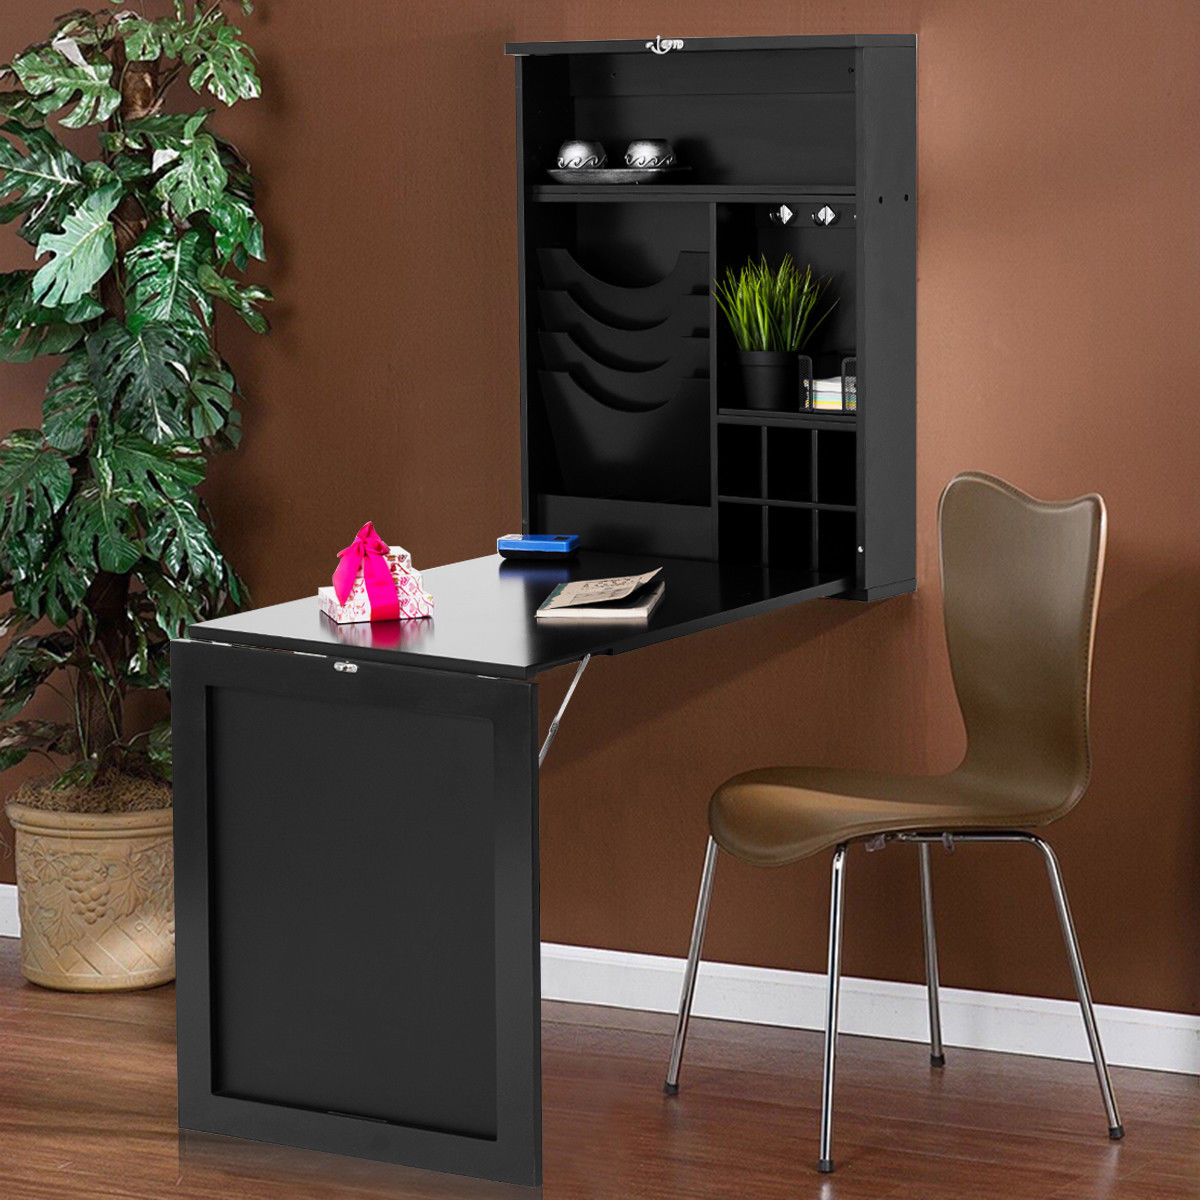 Costway Wall Mounted Table Convertible Desk Fold Out Space Saver Chalkboard  Black